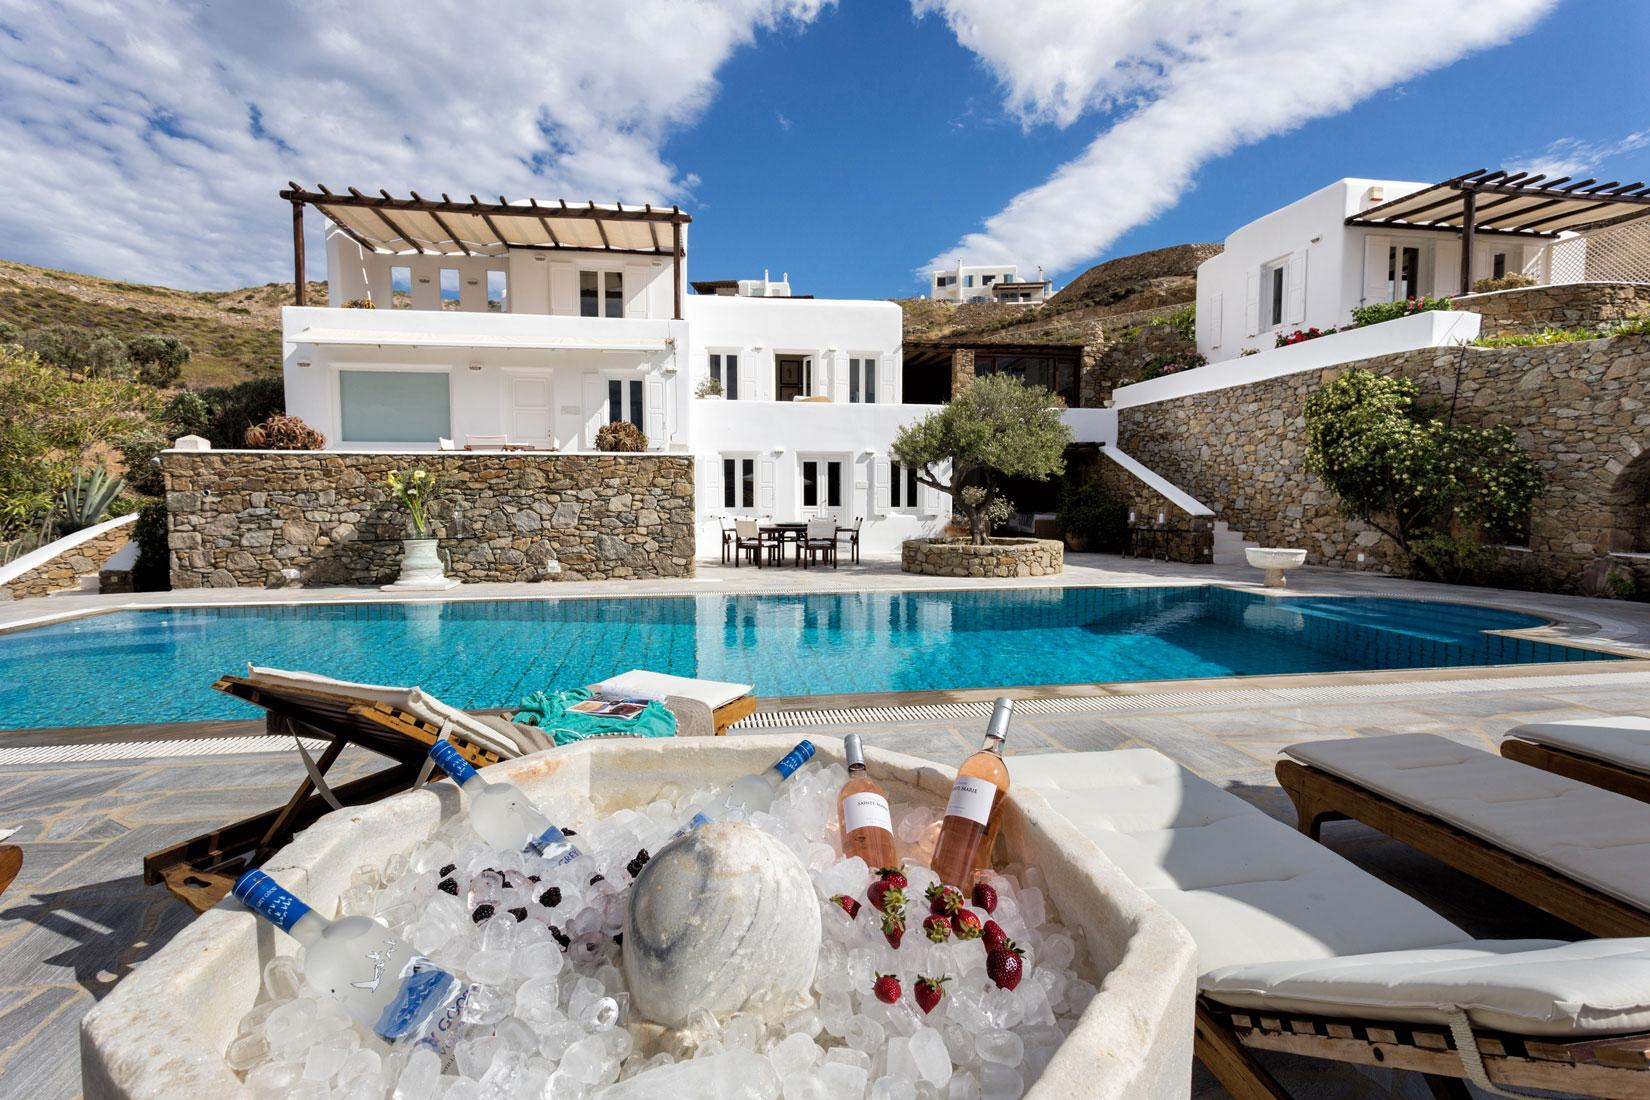 Apartment The Galaxy Mykonos villa with large pool and yoga platform photo 6005342